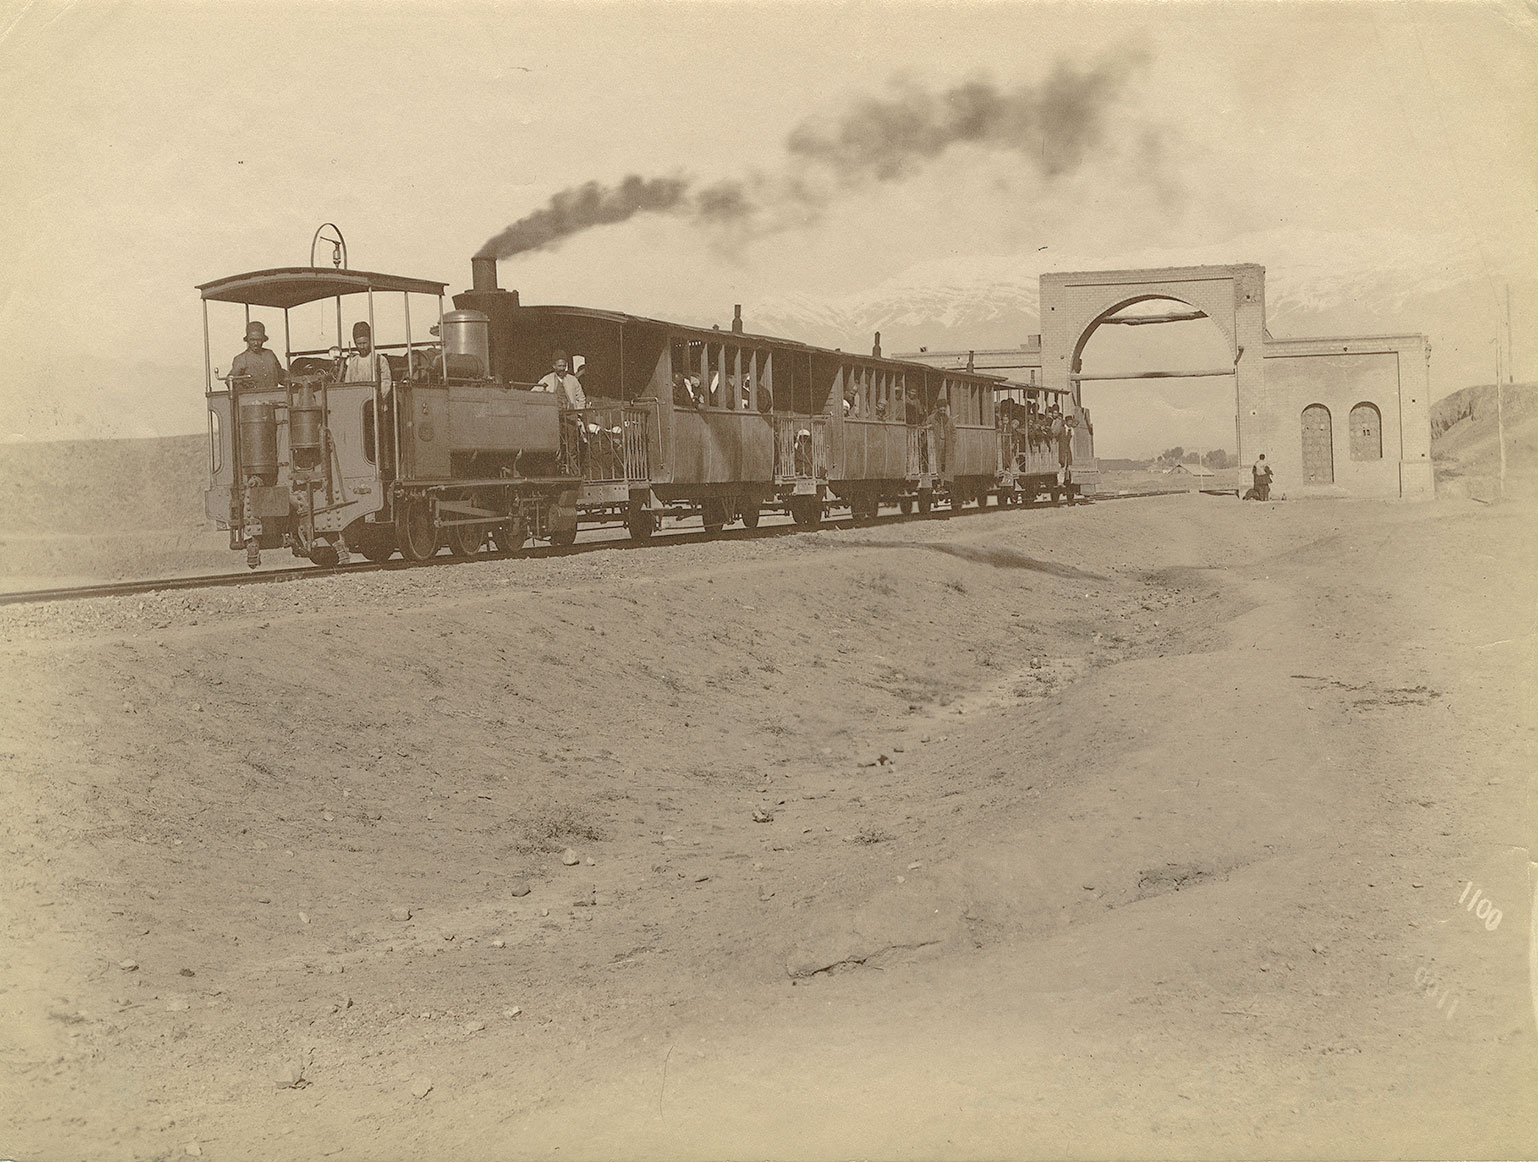 Railway to Shāh Abdol Azīm Shrine, taken by Antoin Sevruguin Albumen, late nineteenth century